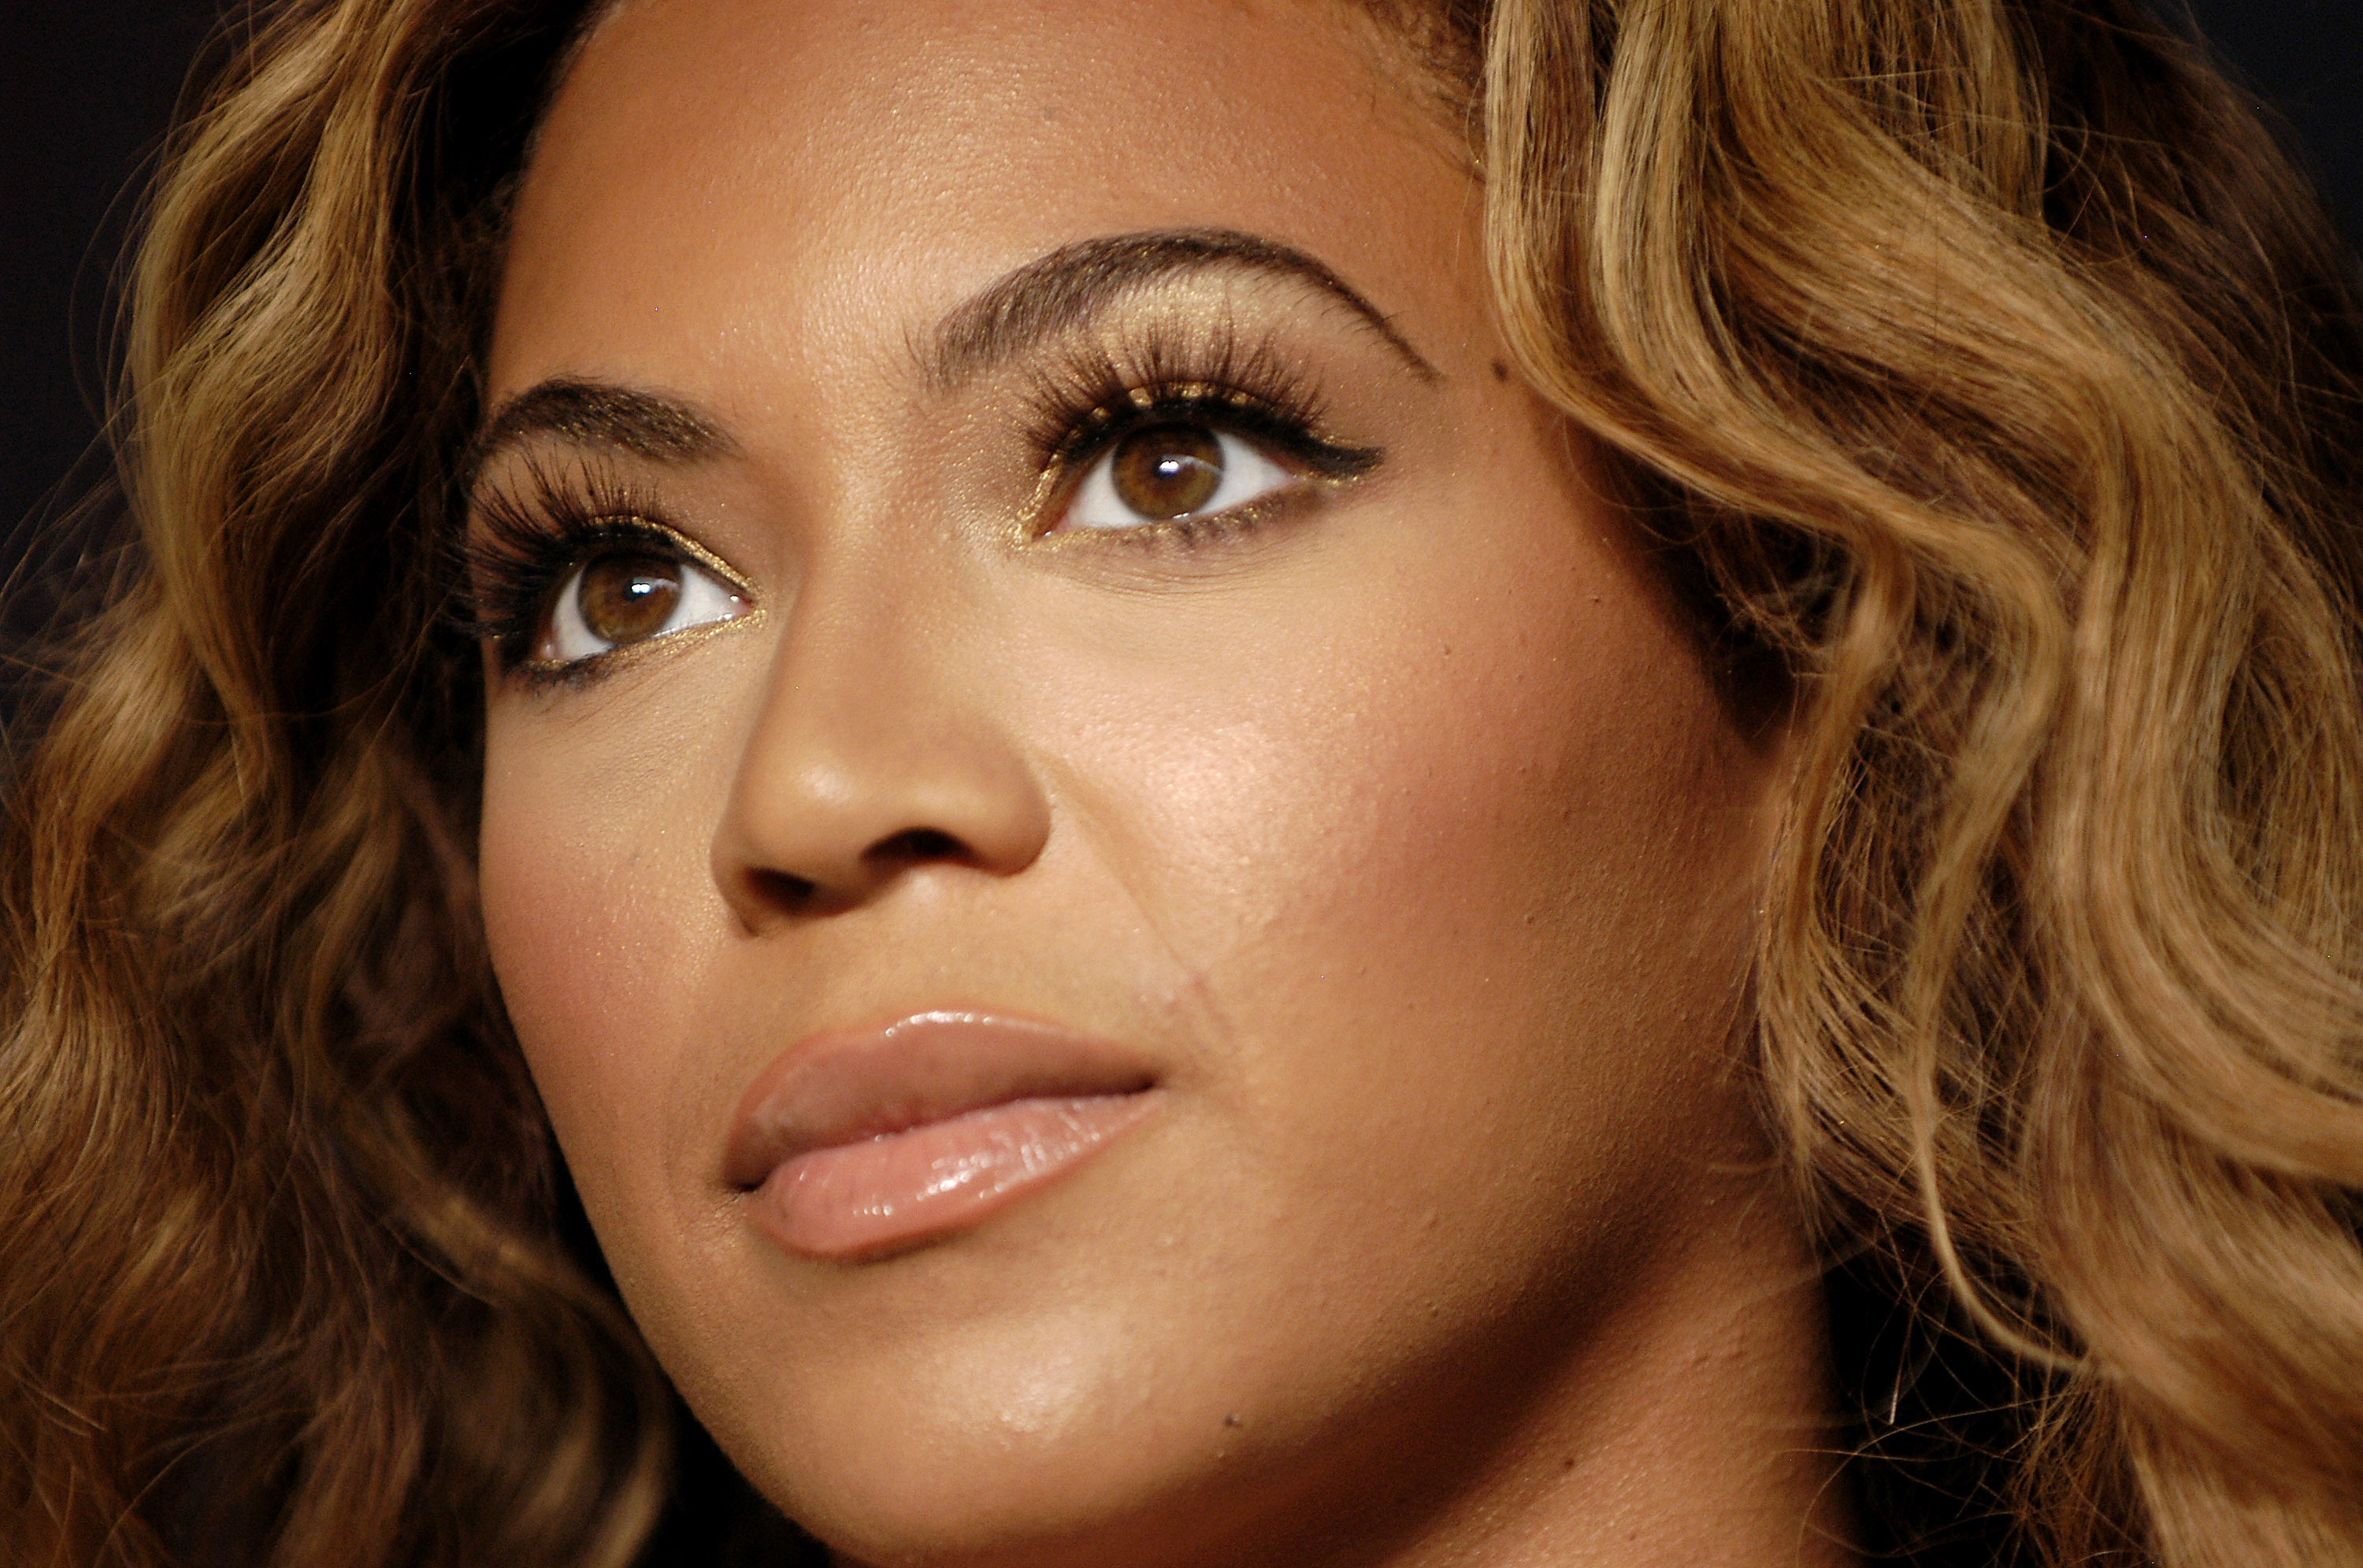 Beyoncé's Makeup Artist Reveals His Top Tips For Amazing Lashes